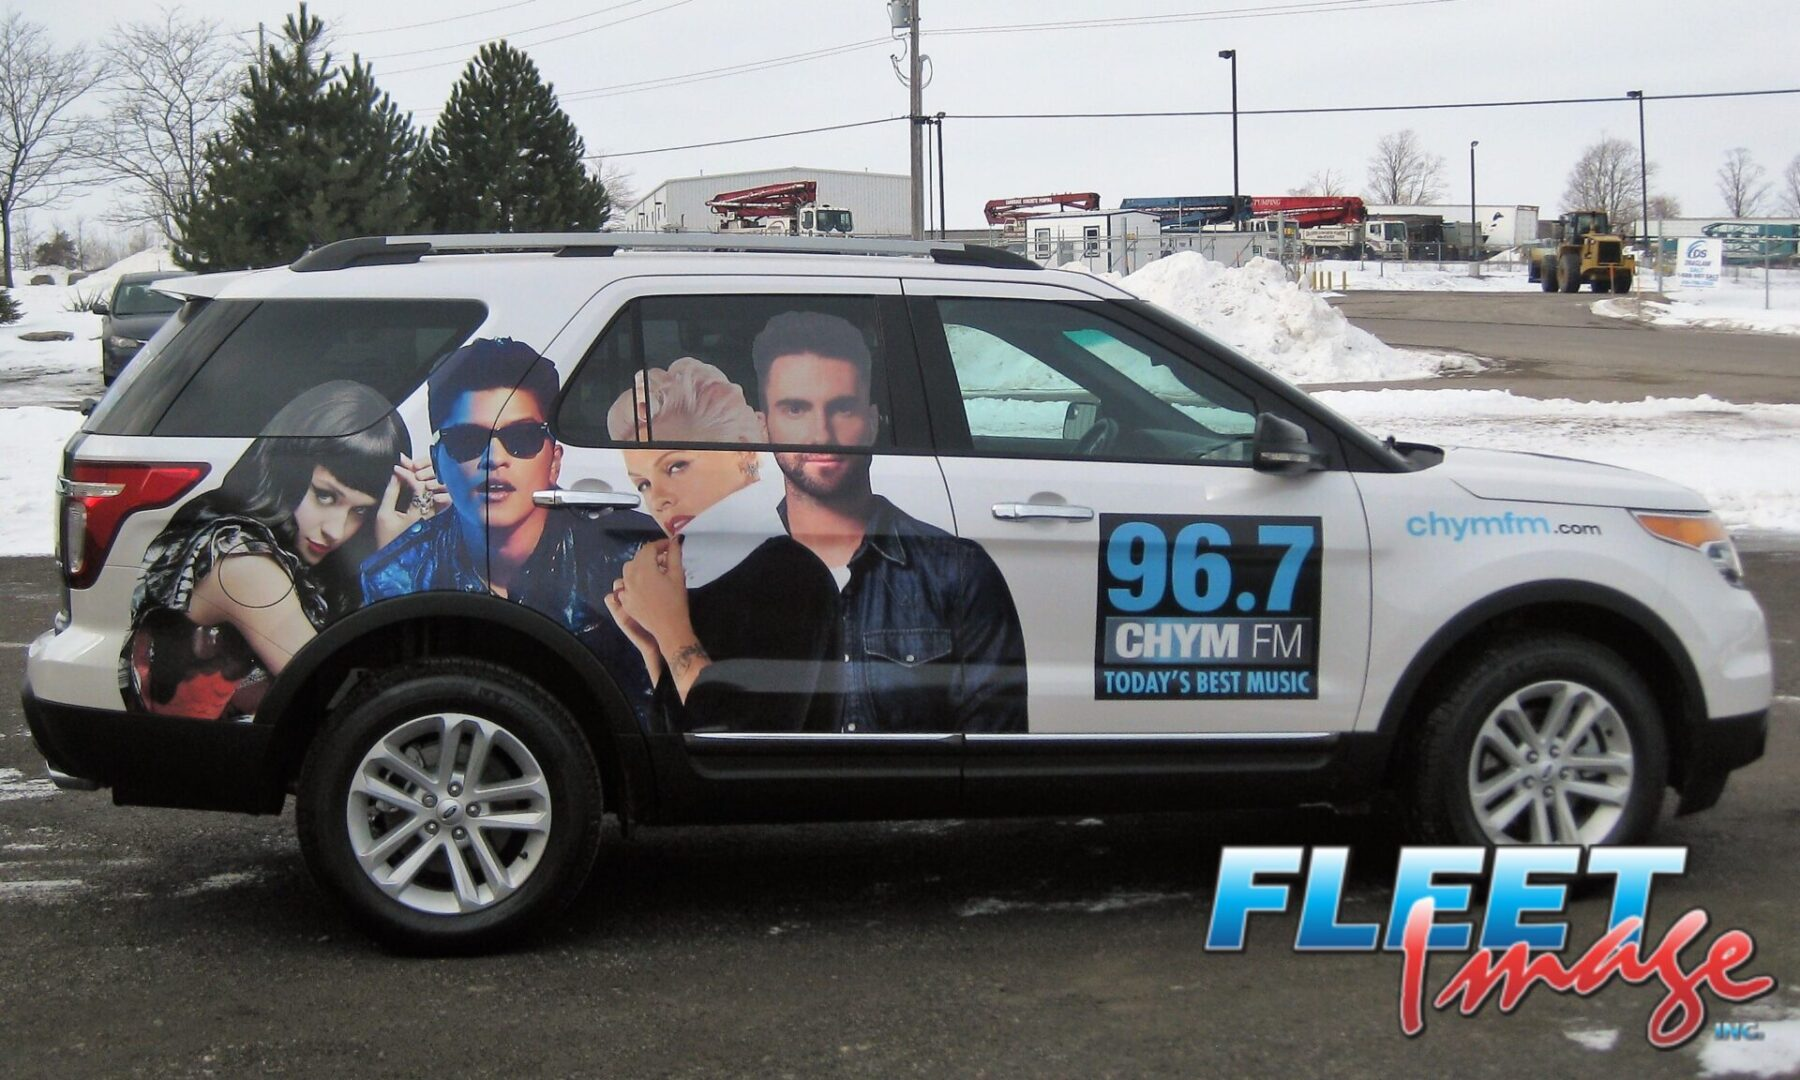 Vehicle with a 96.7 CHYM FM decal sticker